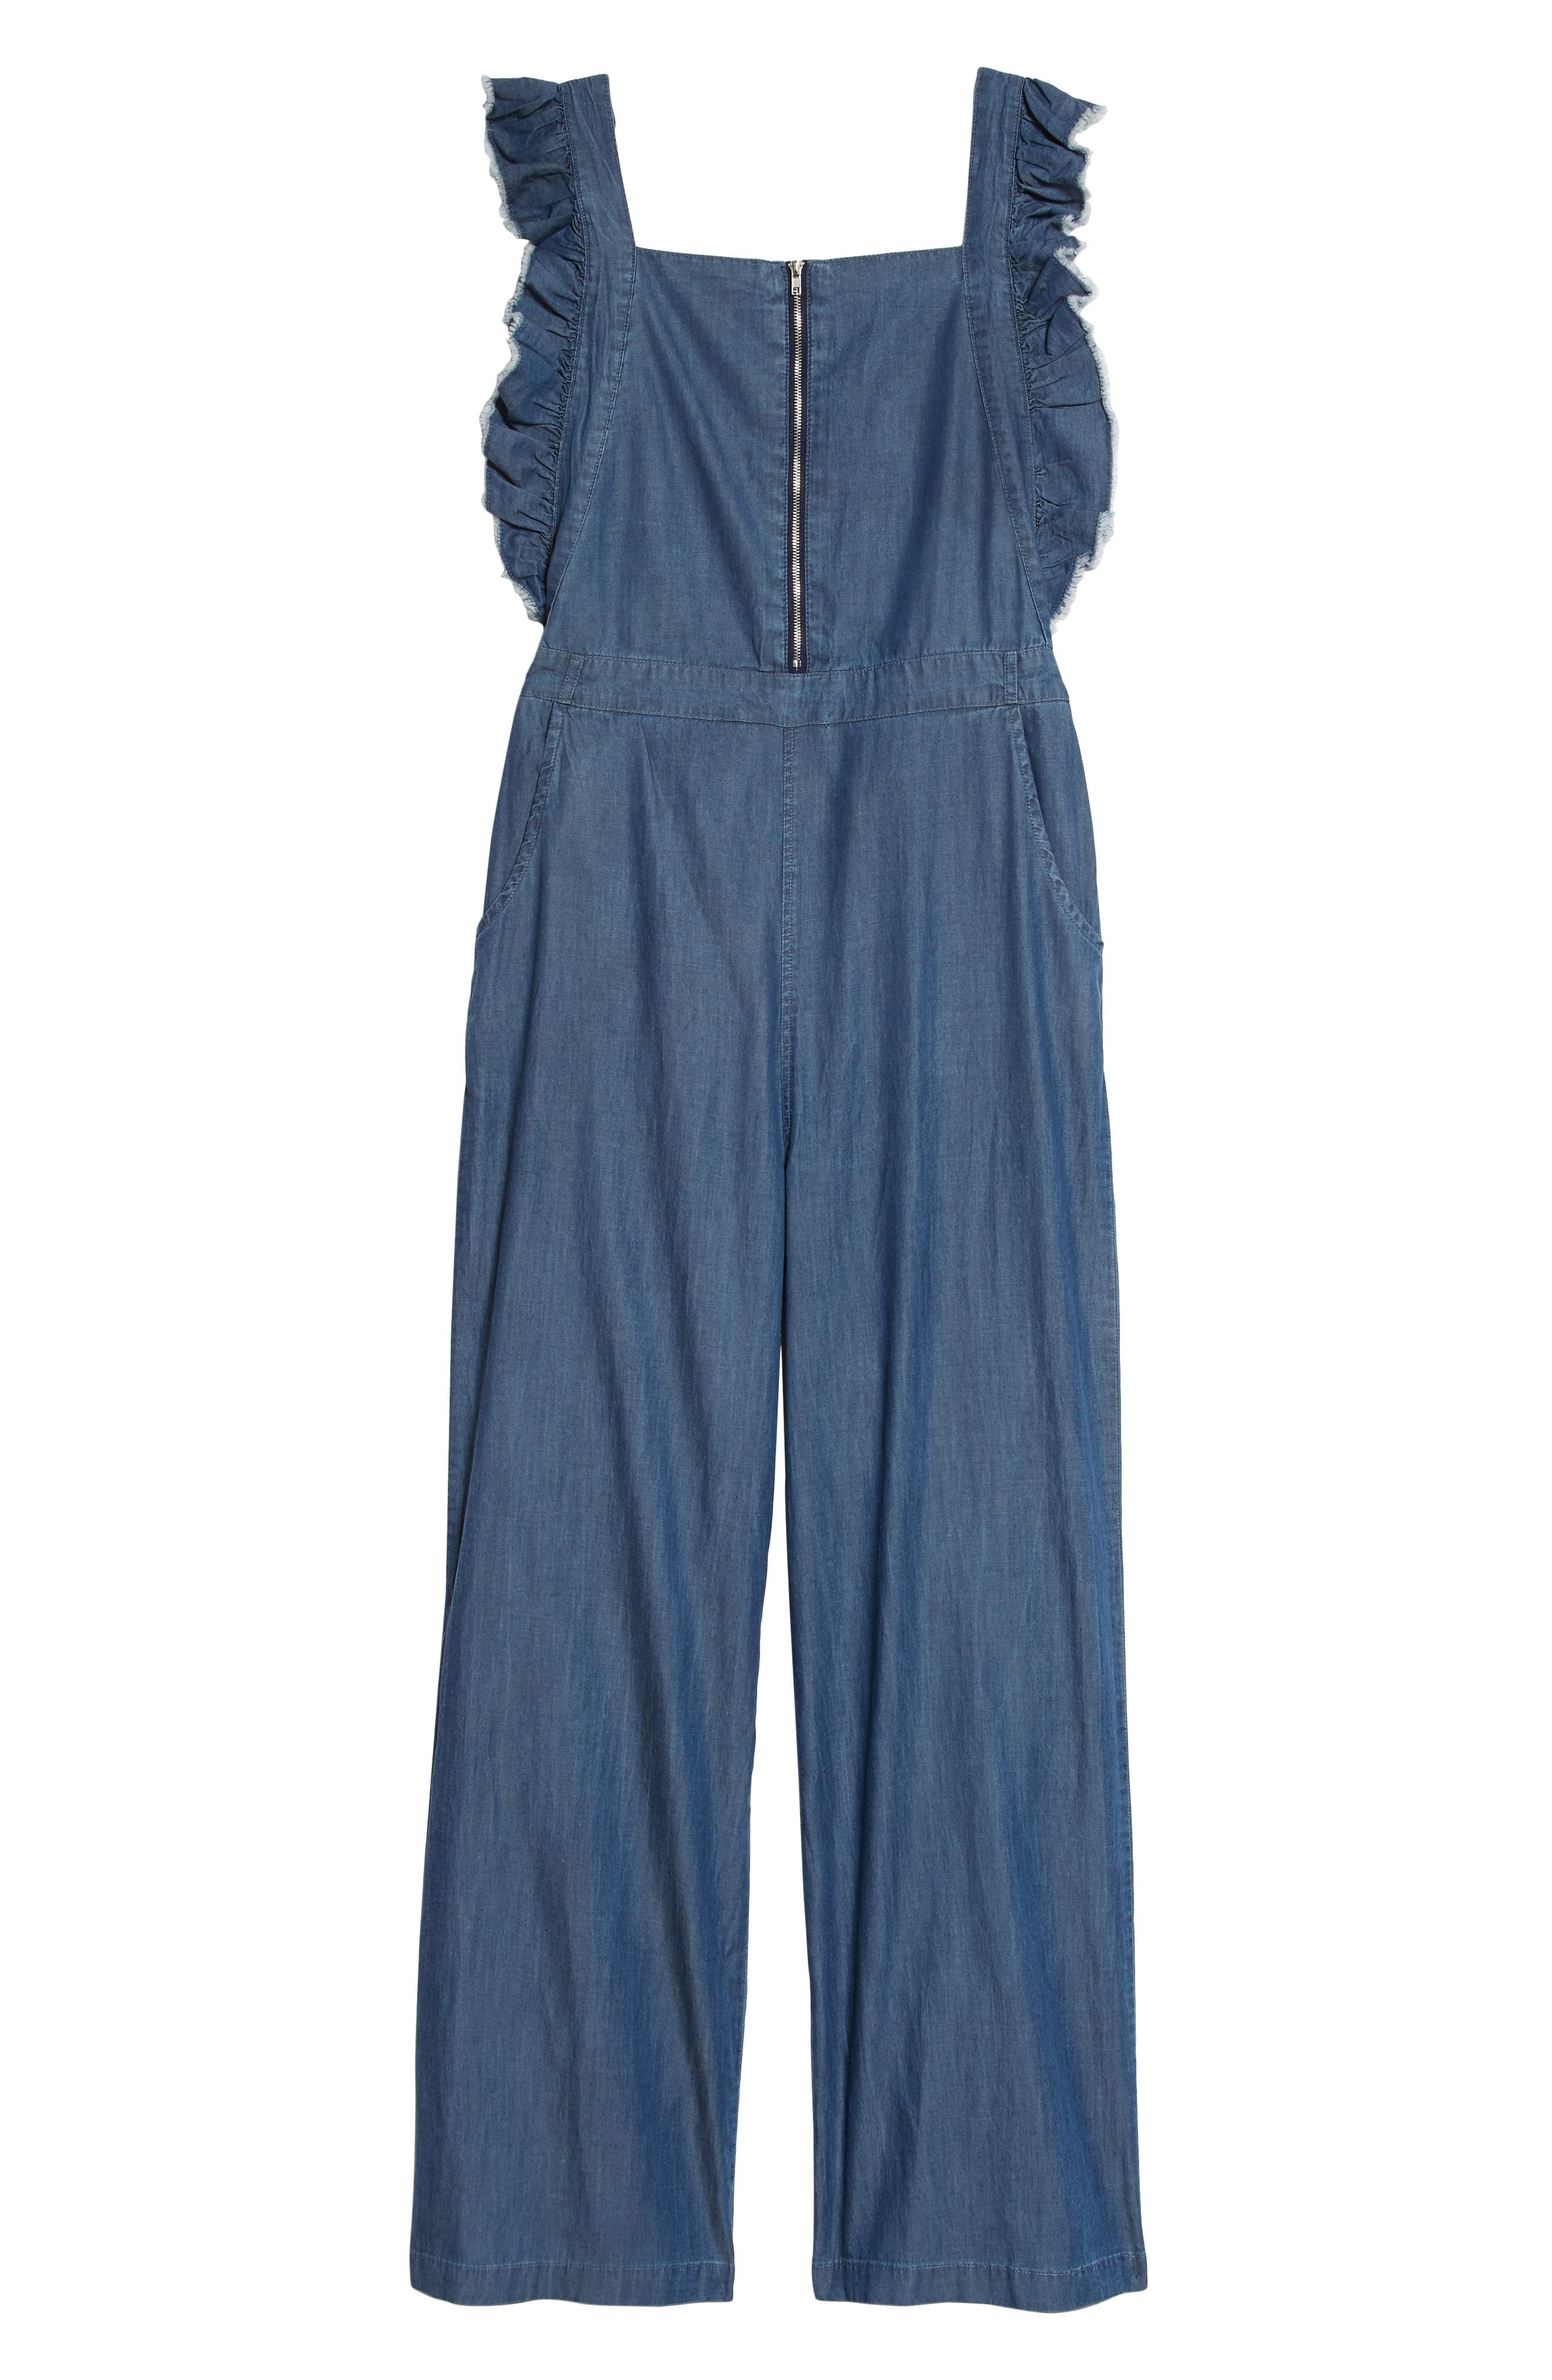 Ruffle Sleeve Denim Jumpsuit,                         Main,                         color, Denim